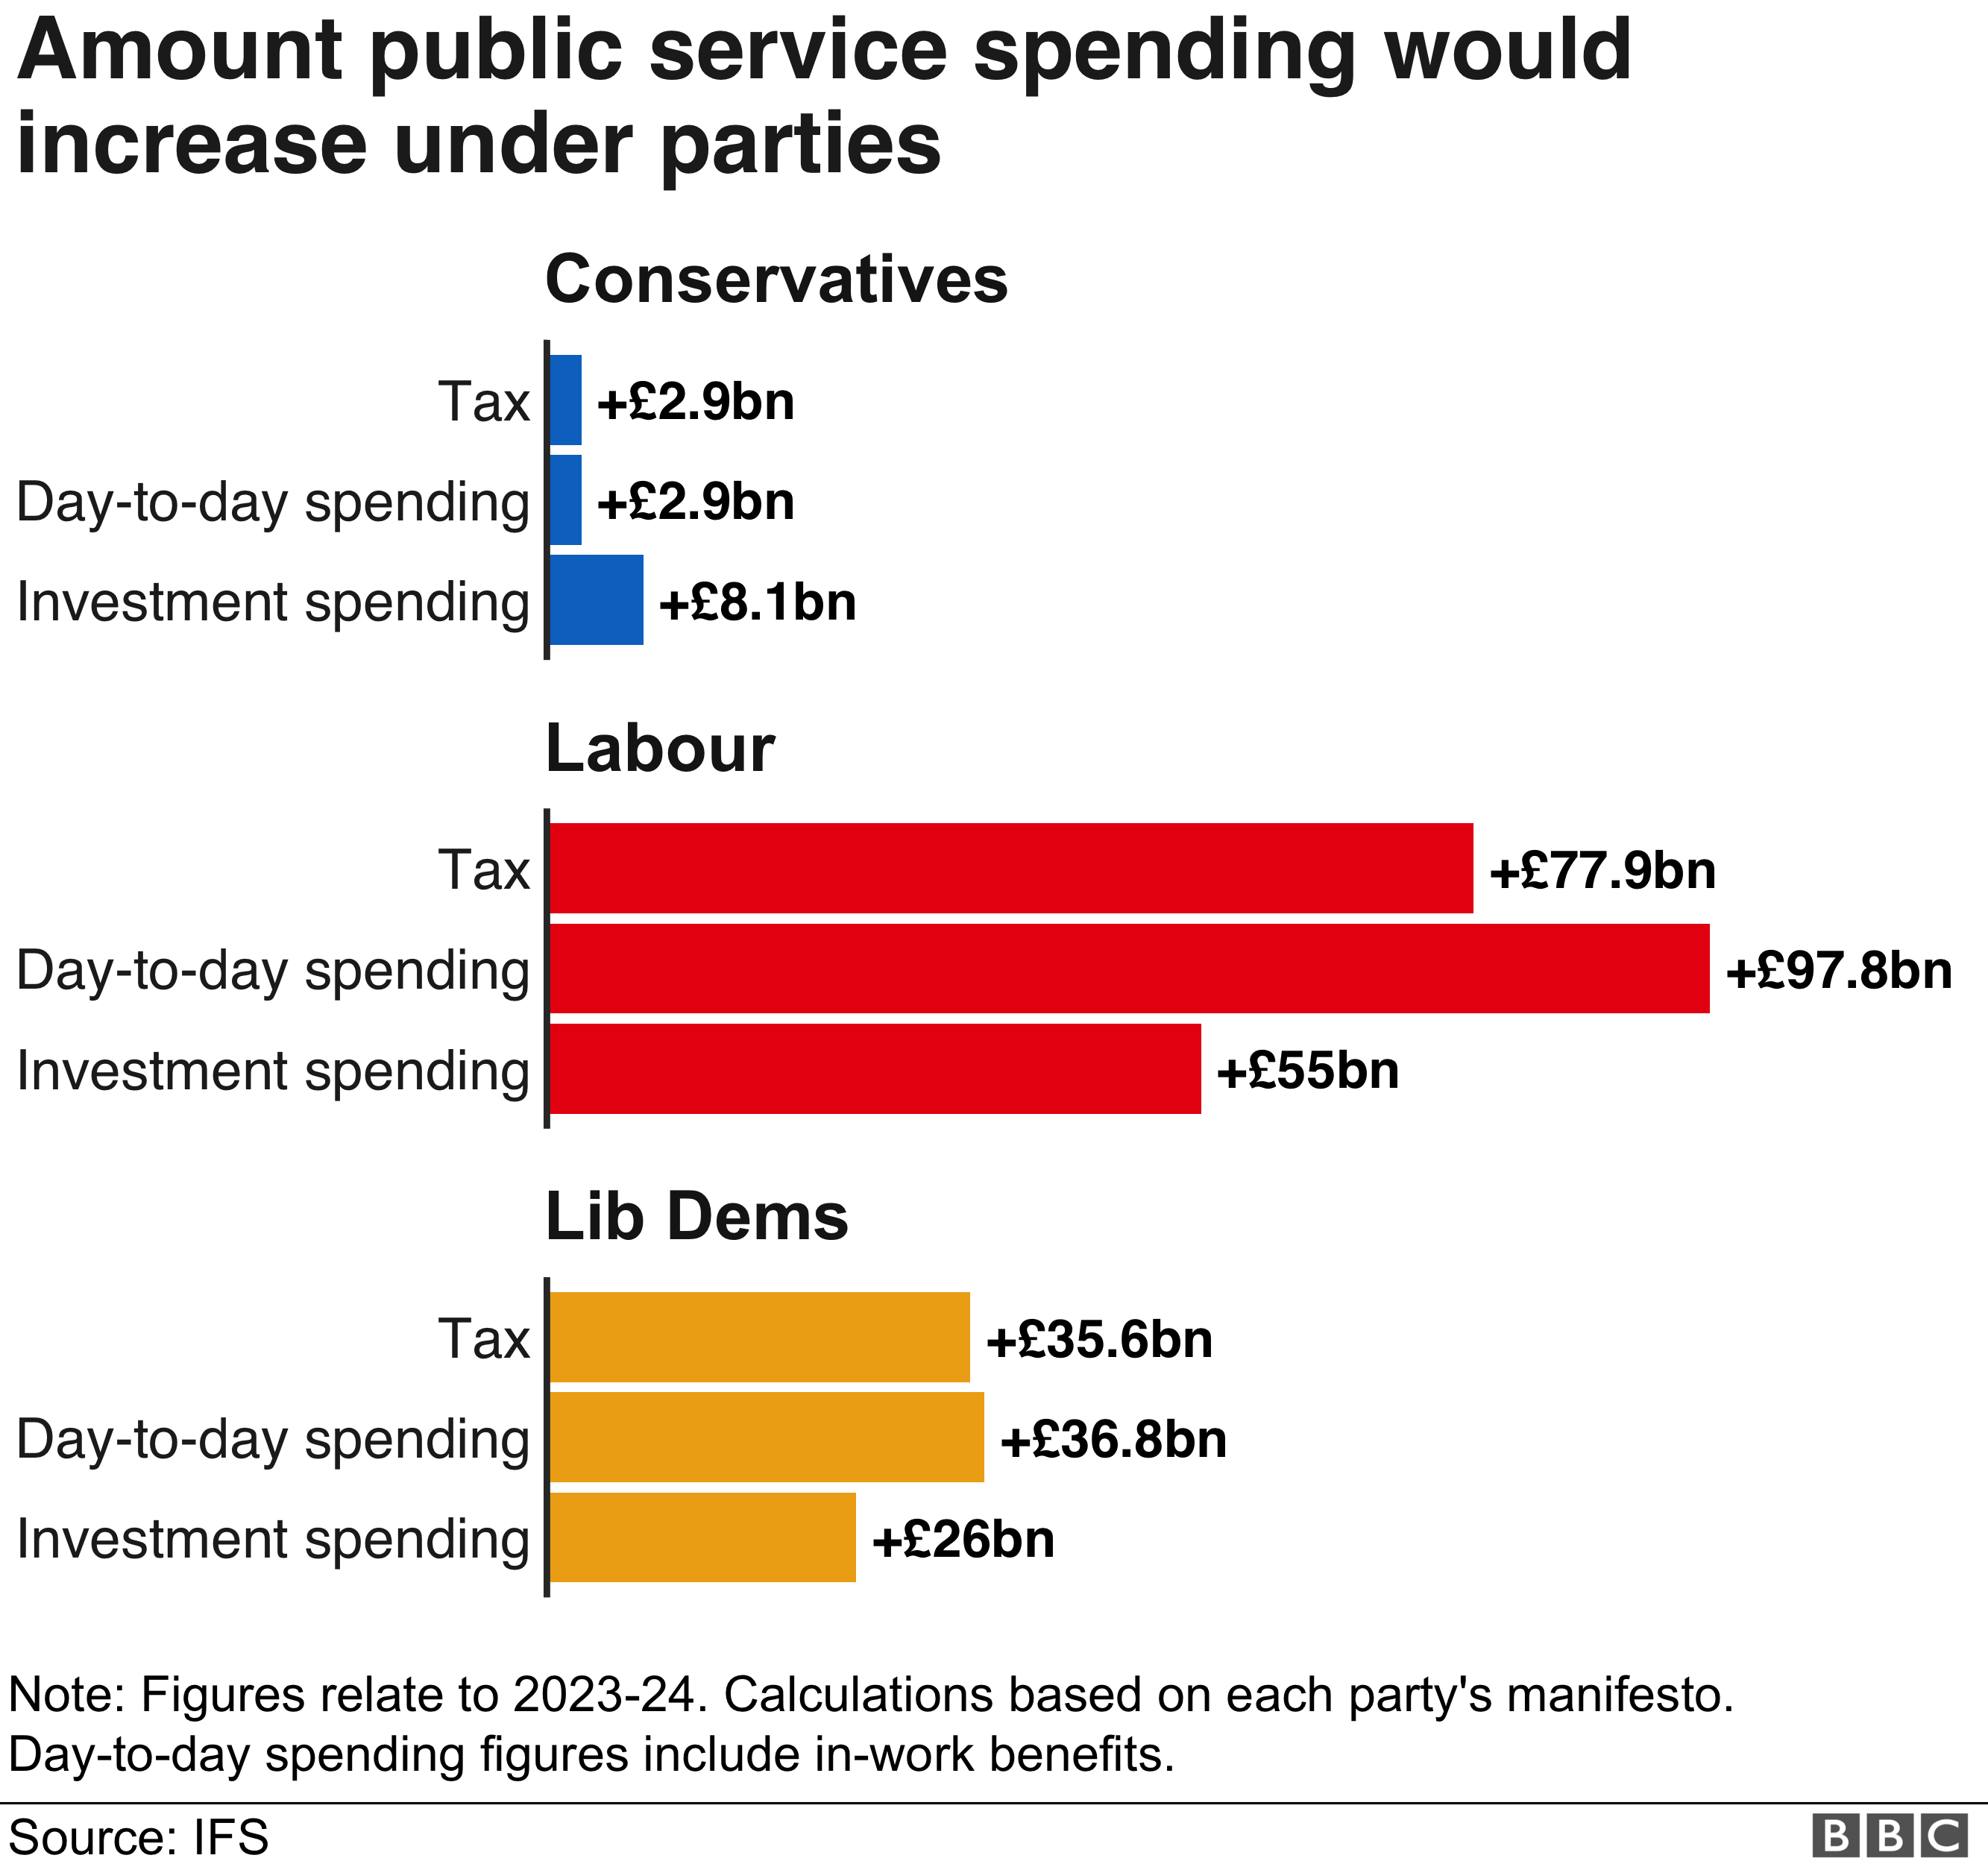 Bar chart showing how much more money each political party intends to spend, based on manifesto plans